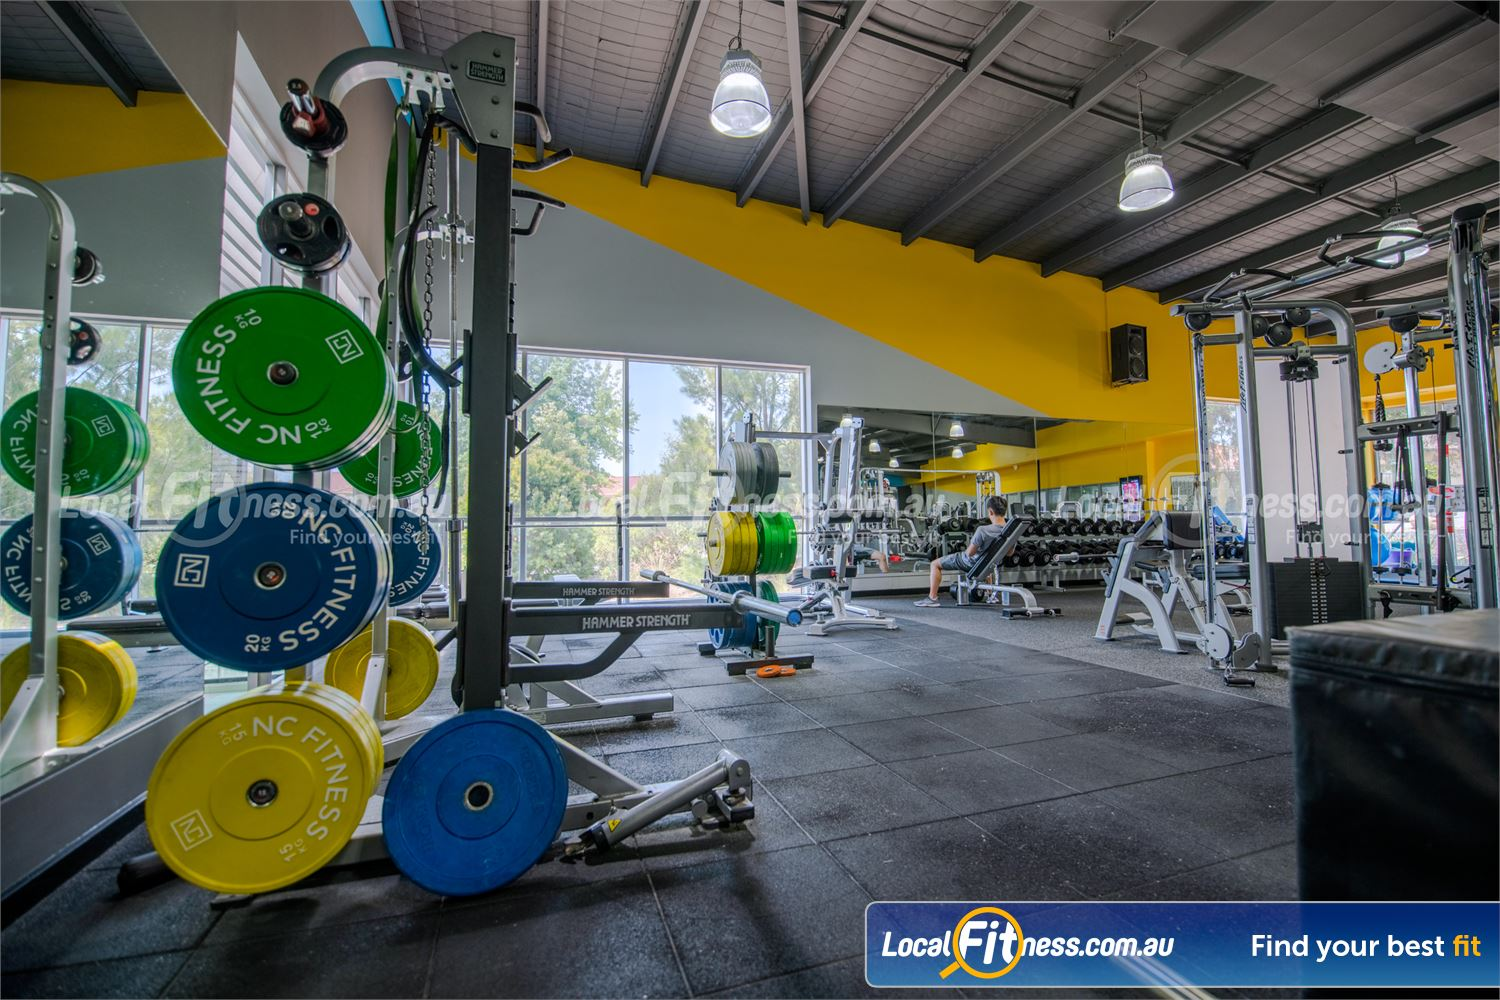 Knox Leisureworks Near Ferntree Gully Our 24/7 Boronia gym includes a spacious free-weights area.